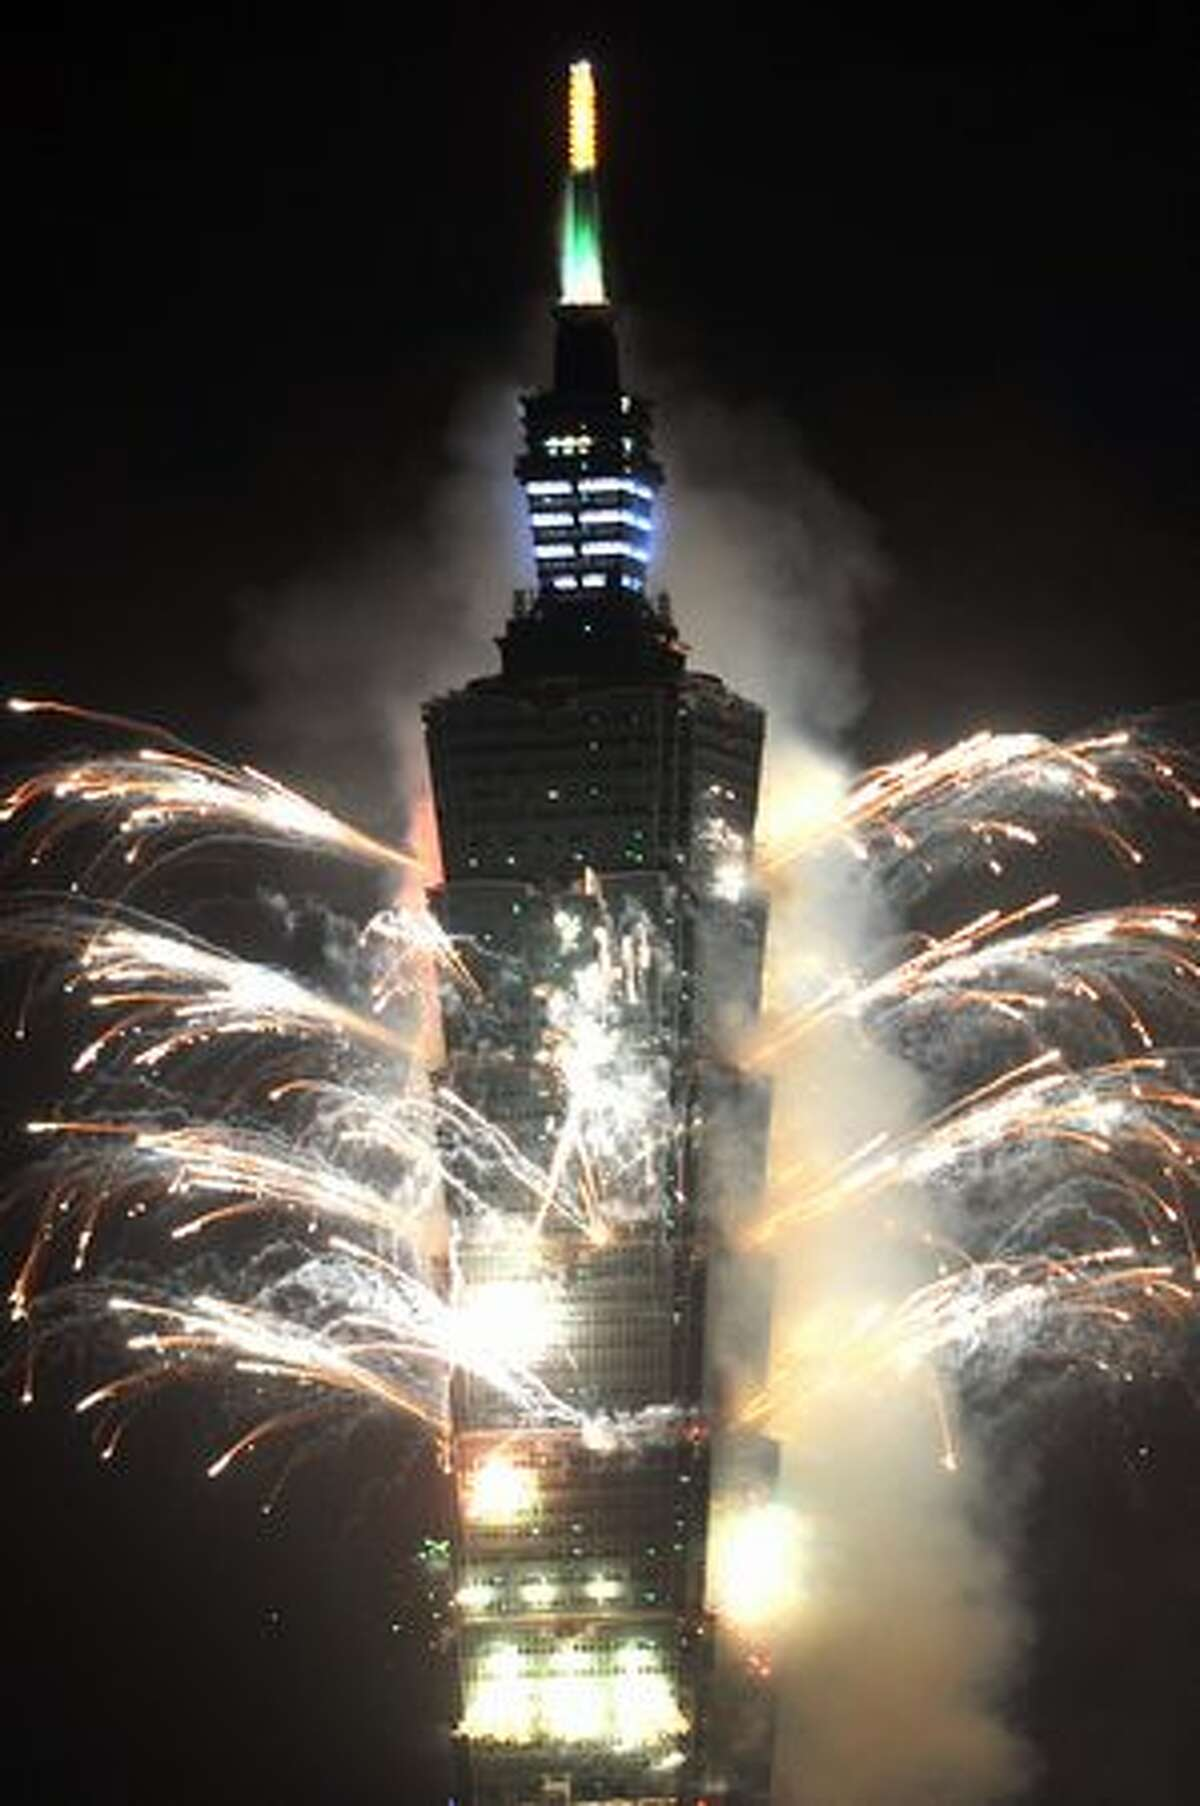 Fireworks explode above Taiwan's tallest building, Taipei 101, on January 1, 2011 to celebrate the New Year. Hundreds of thousands of people gathered in Taipei to mark the 100th anniversary of the establishment of the Republic of China.